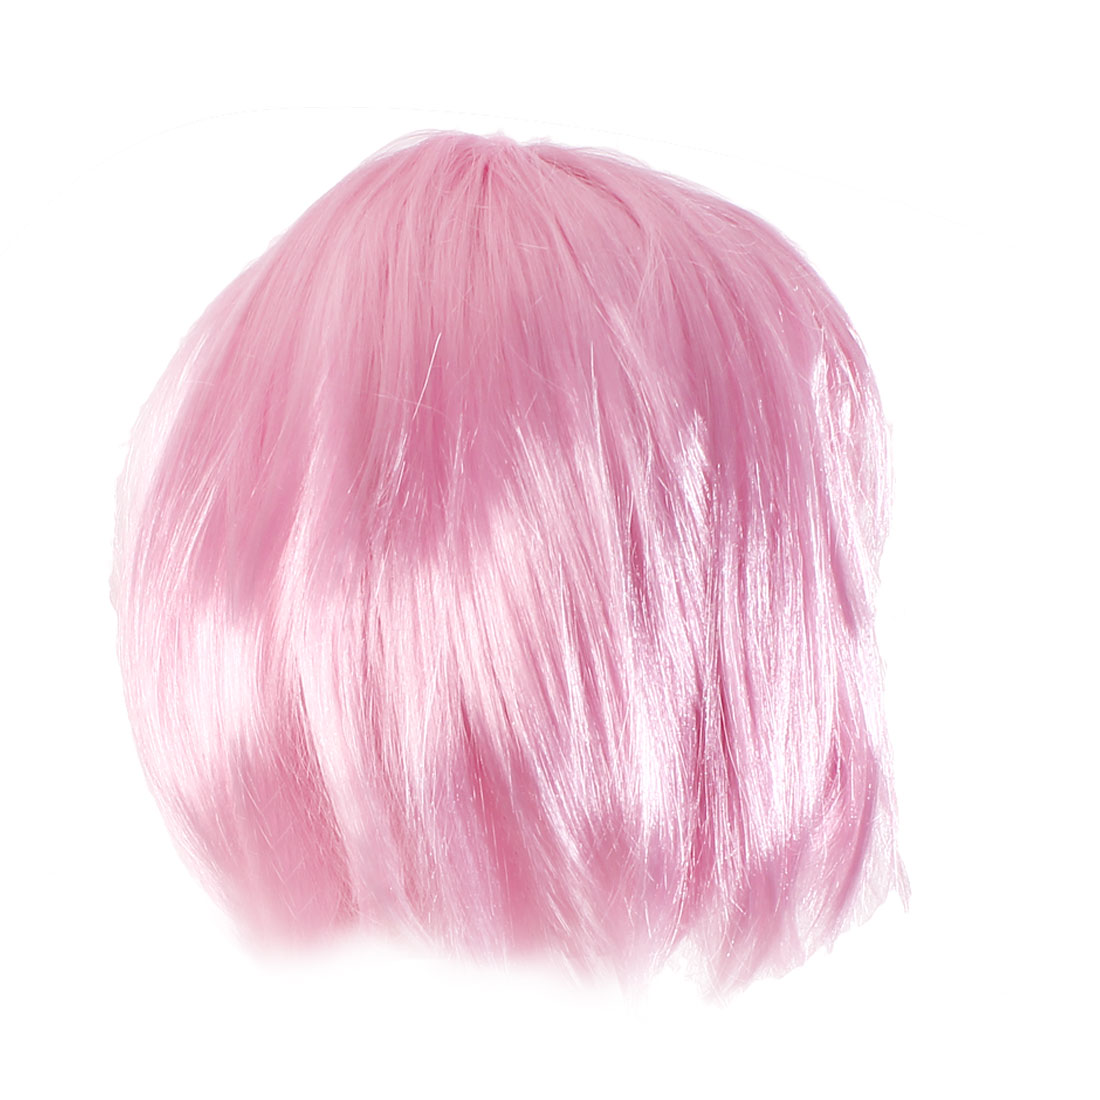 Woman Pink bobo Style Short Straight Synthetic Hair Wig 25cm Long